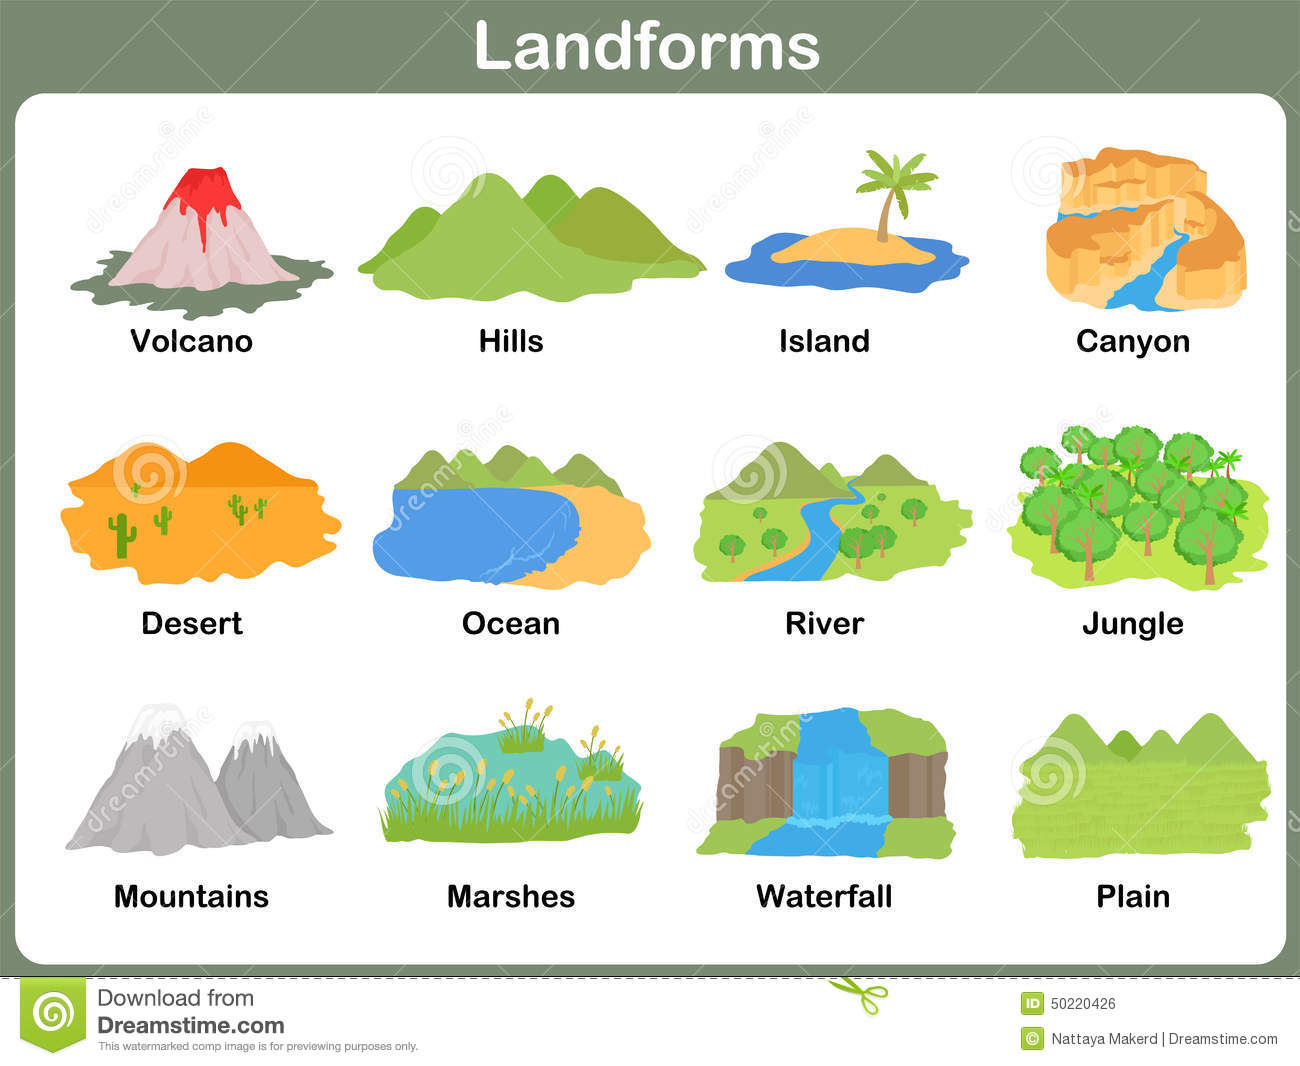 Landforms Worksheet For Kids